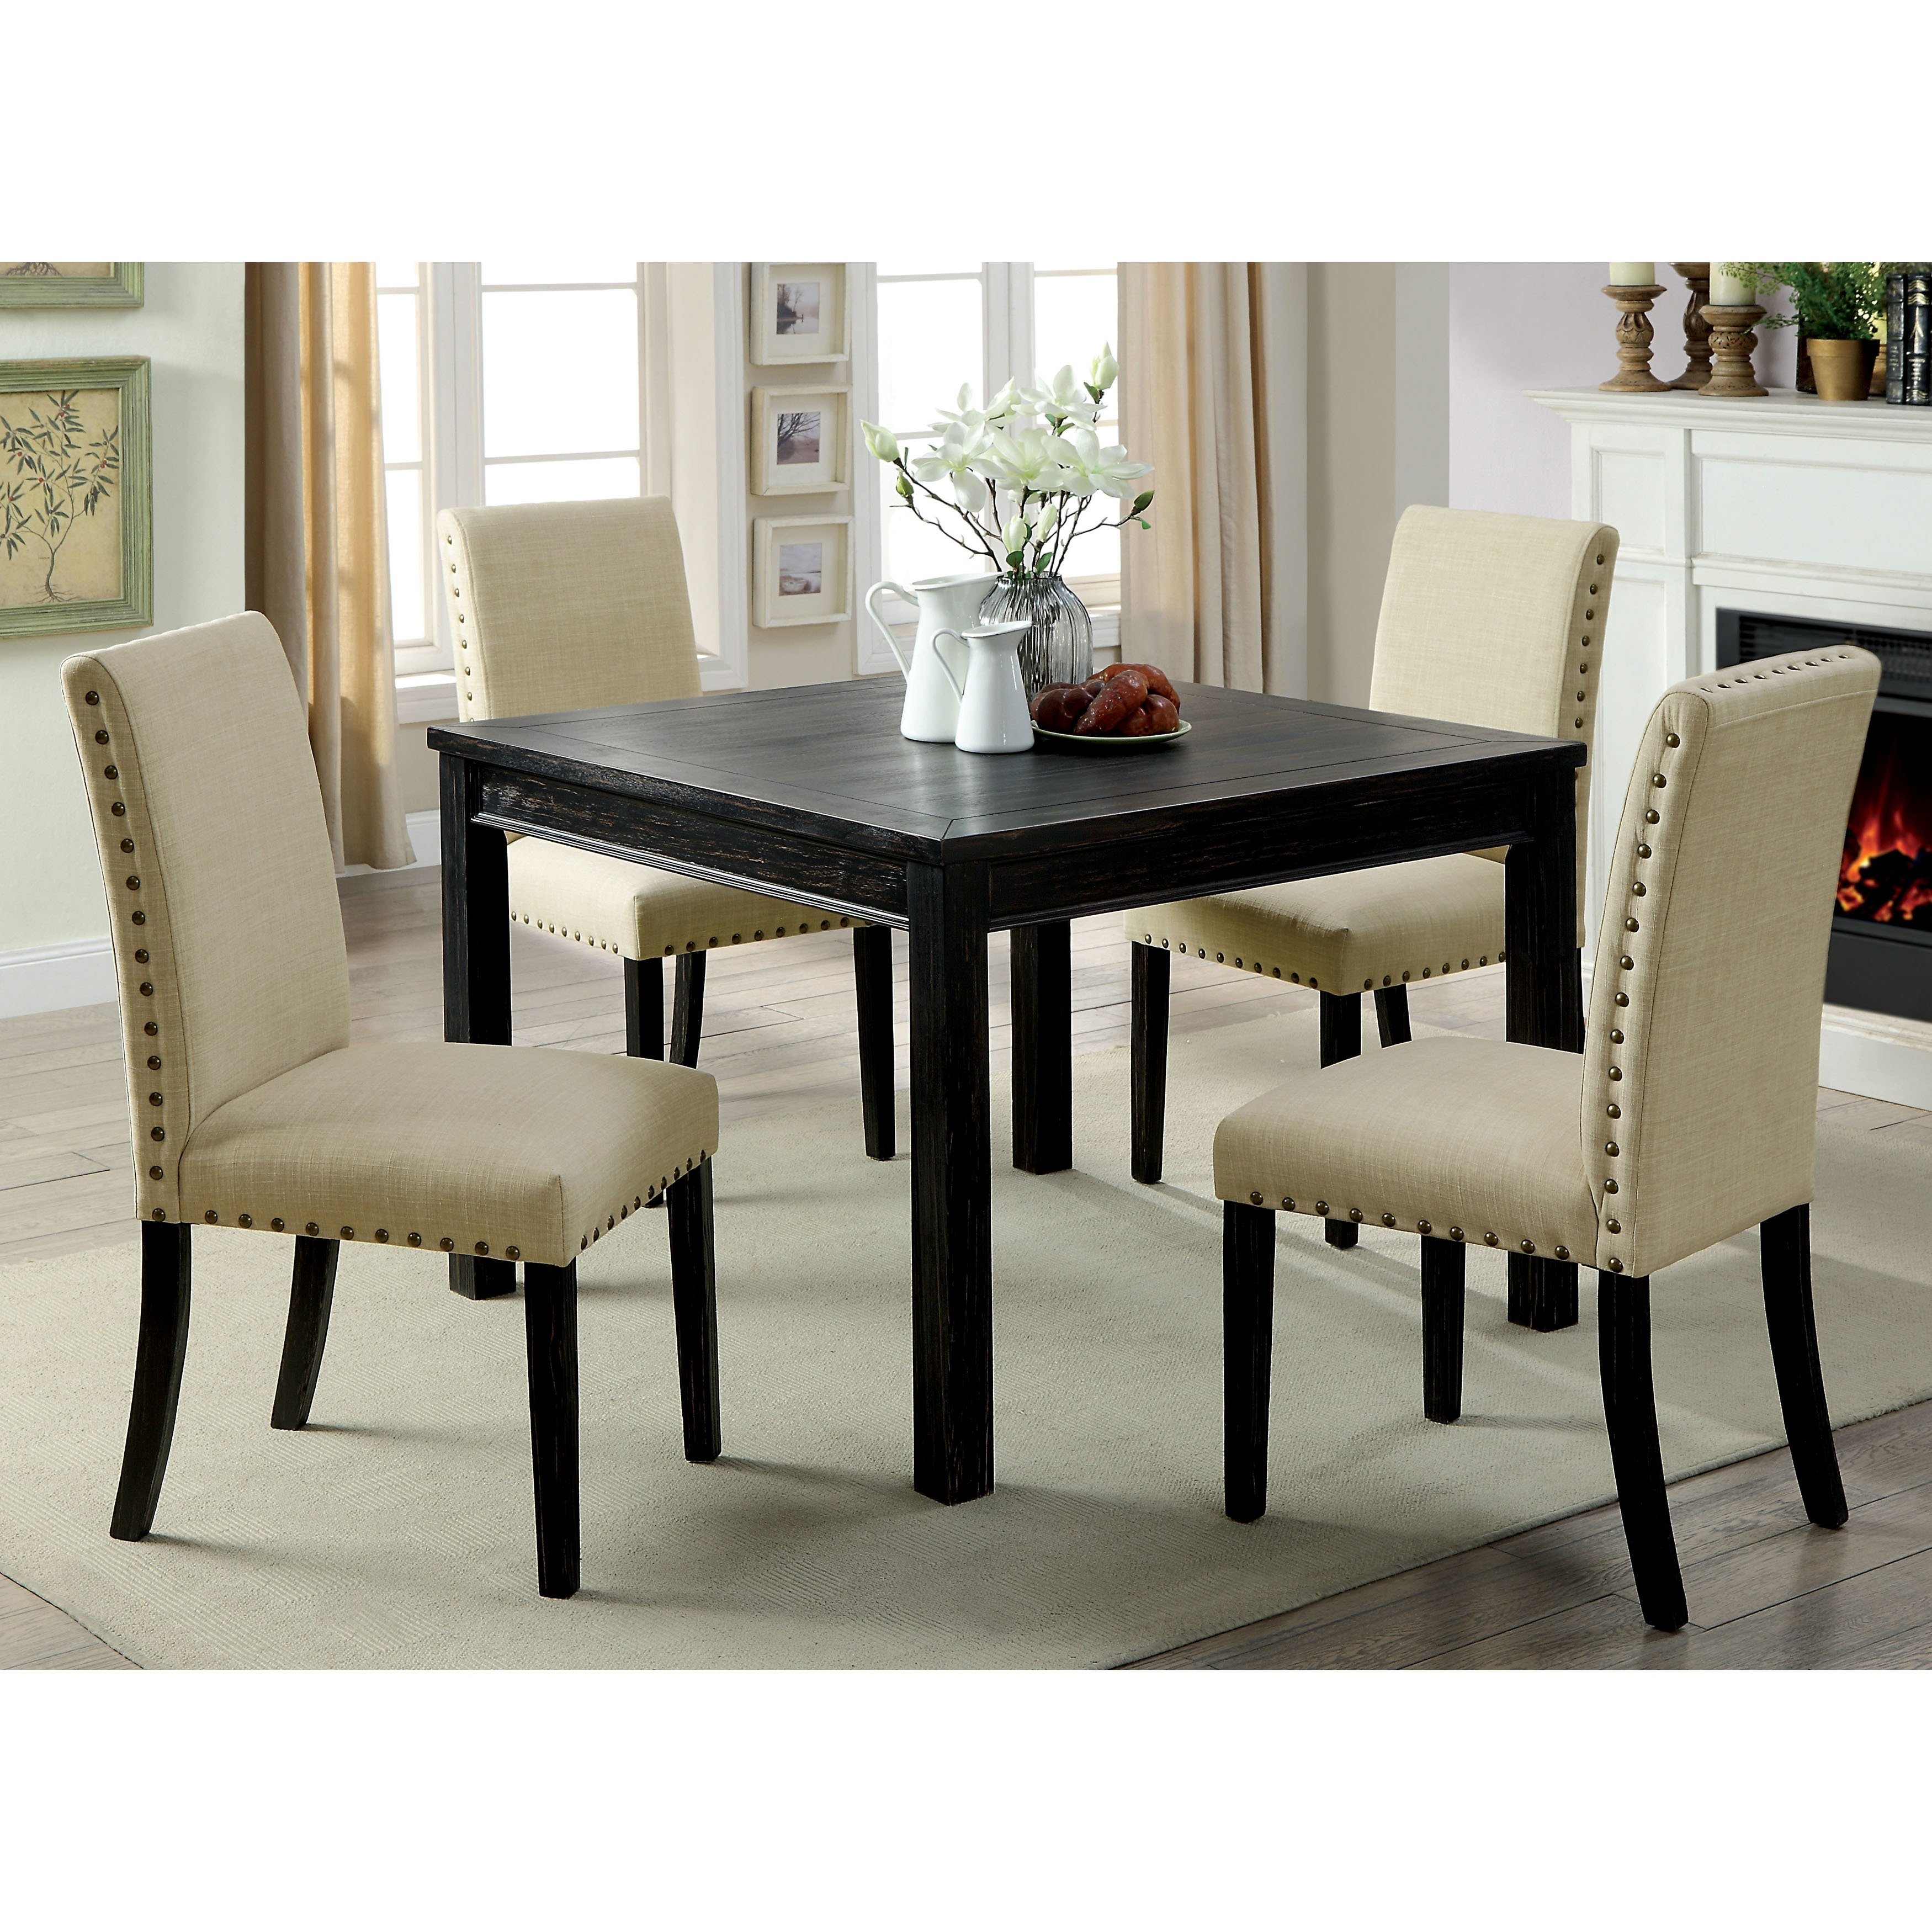 Shop Furniture Of America Delewarn Rustic 5 Piece Antique Black Within Newest Jaxon 5 Piece Round Dining Sets With Upholstered Chairs (View 20 of 20)